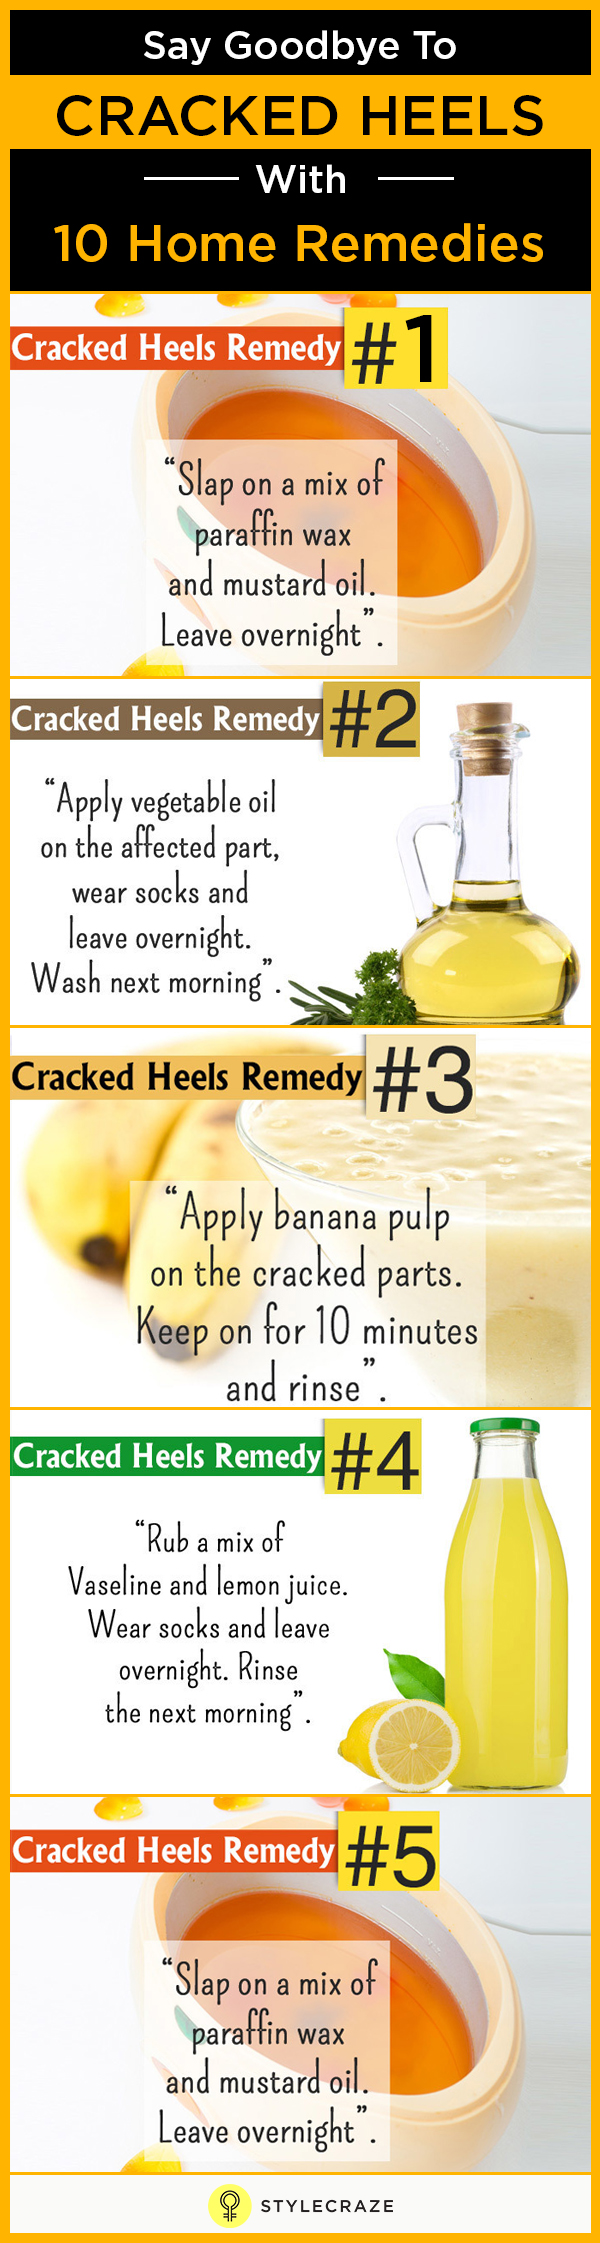 say goodbye to cracked heels with 10 Home remedies